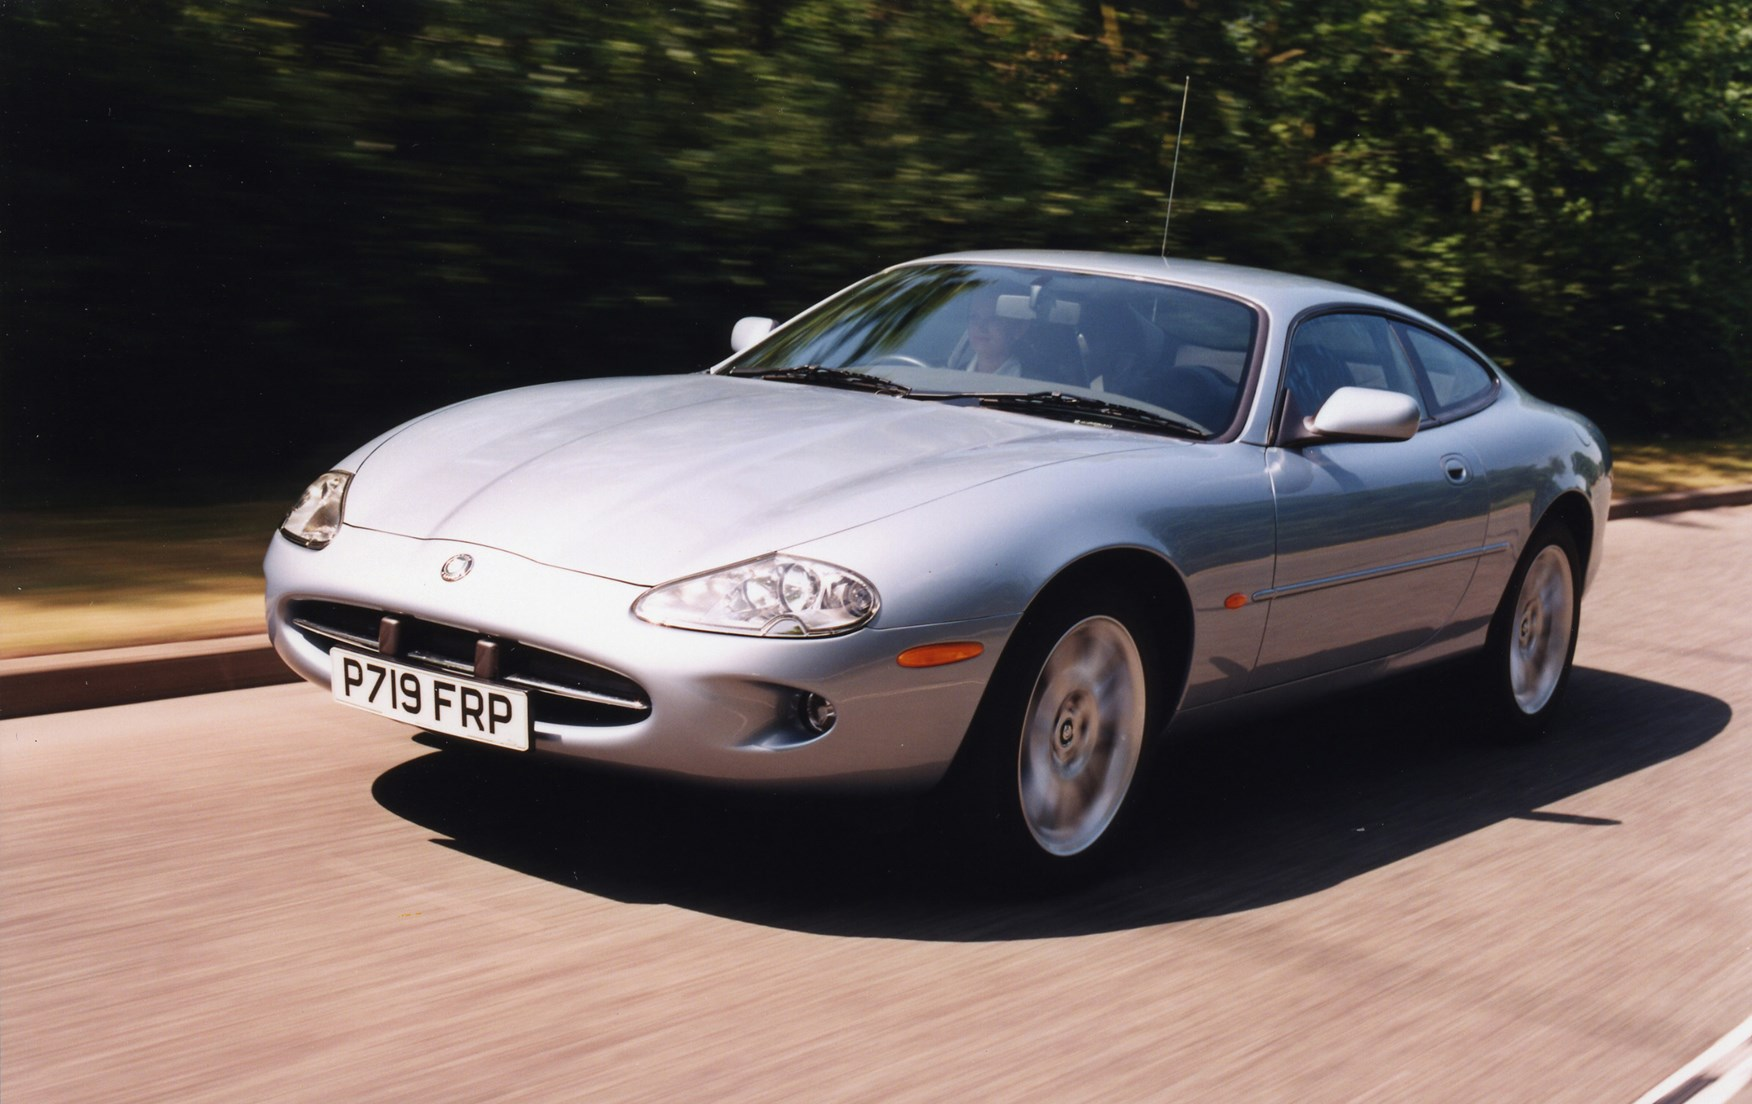 View all images of the jaguar xk8 coup 96 05